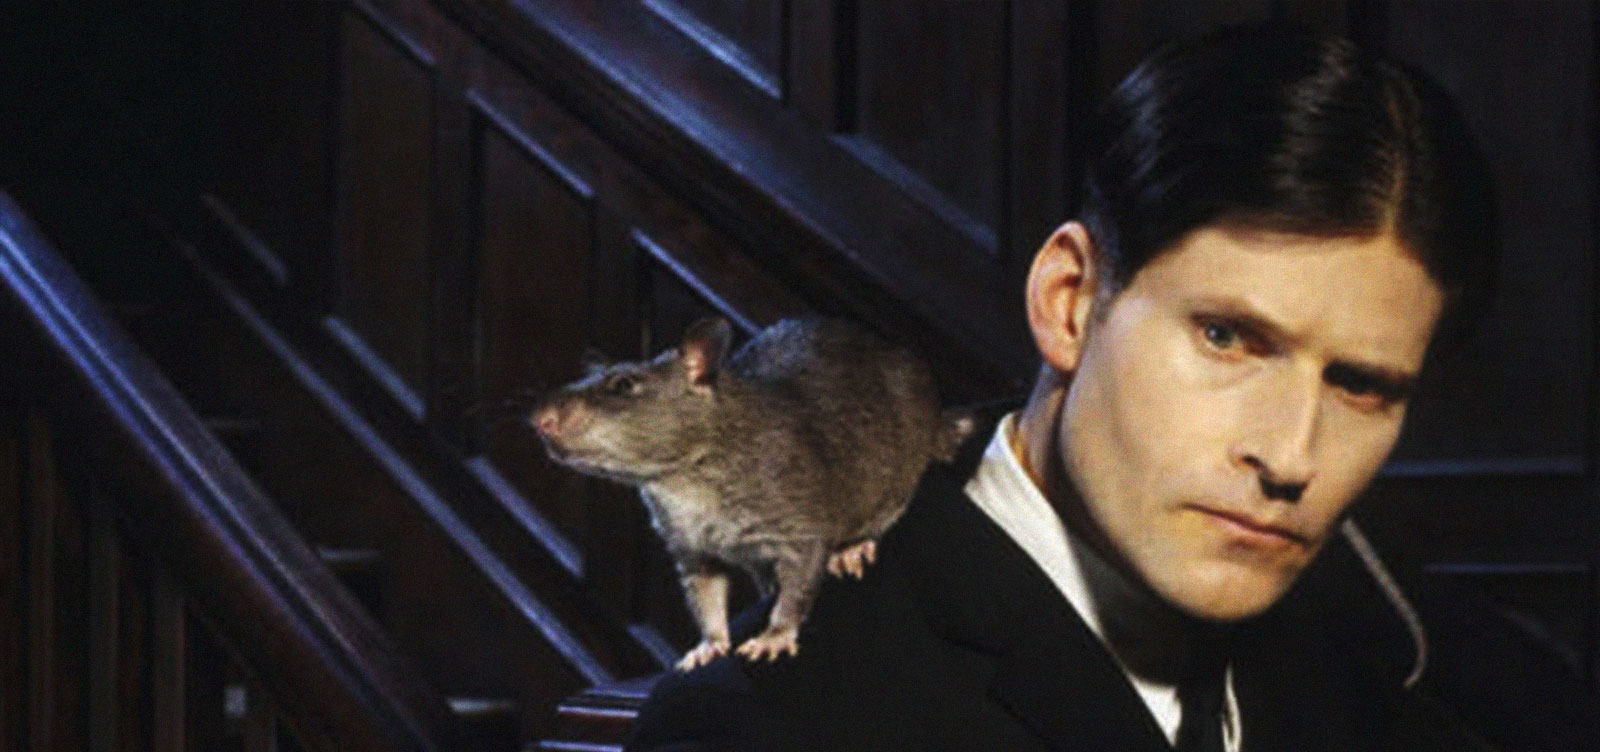 10 of The Worst Pets in Film - Horror Land - Horror